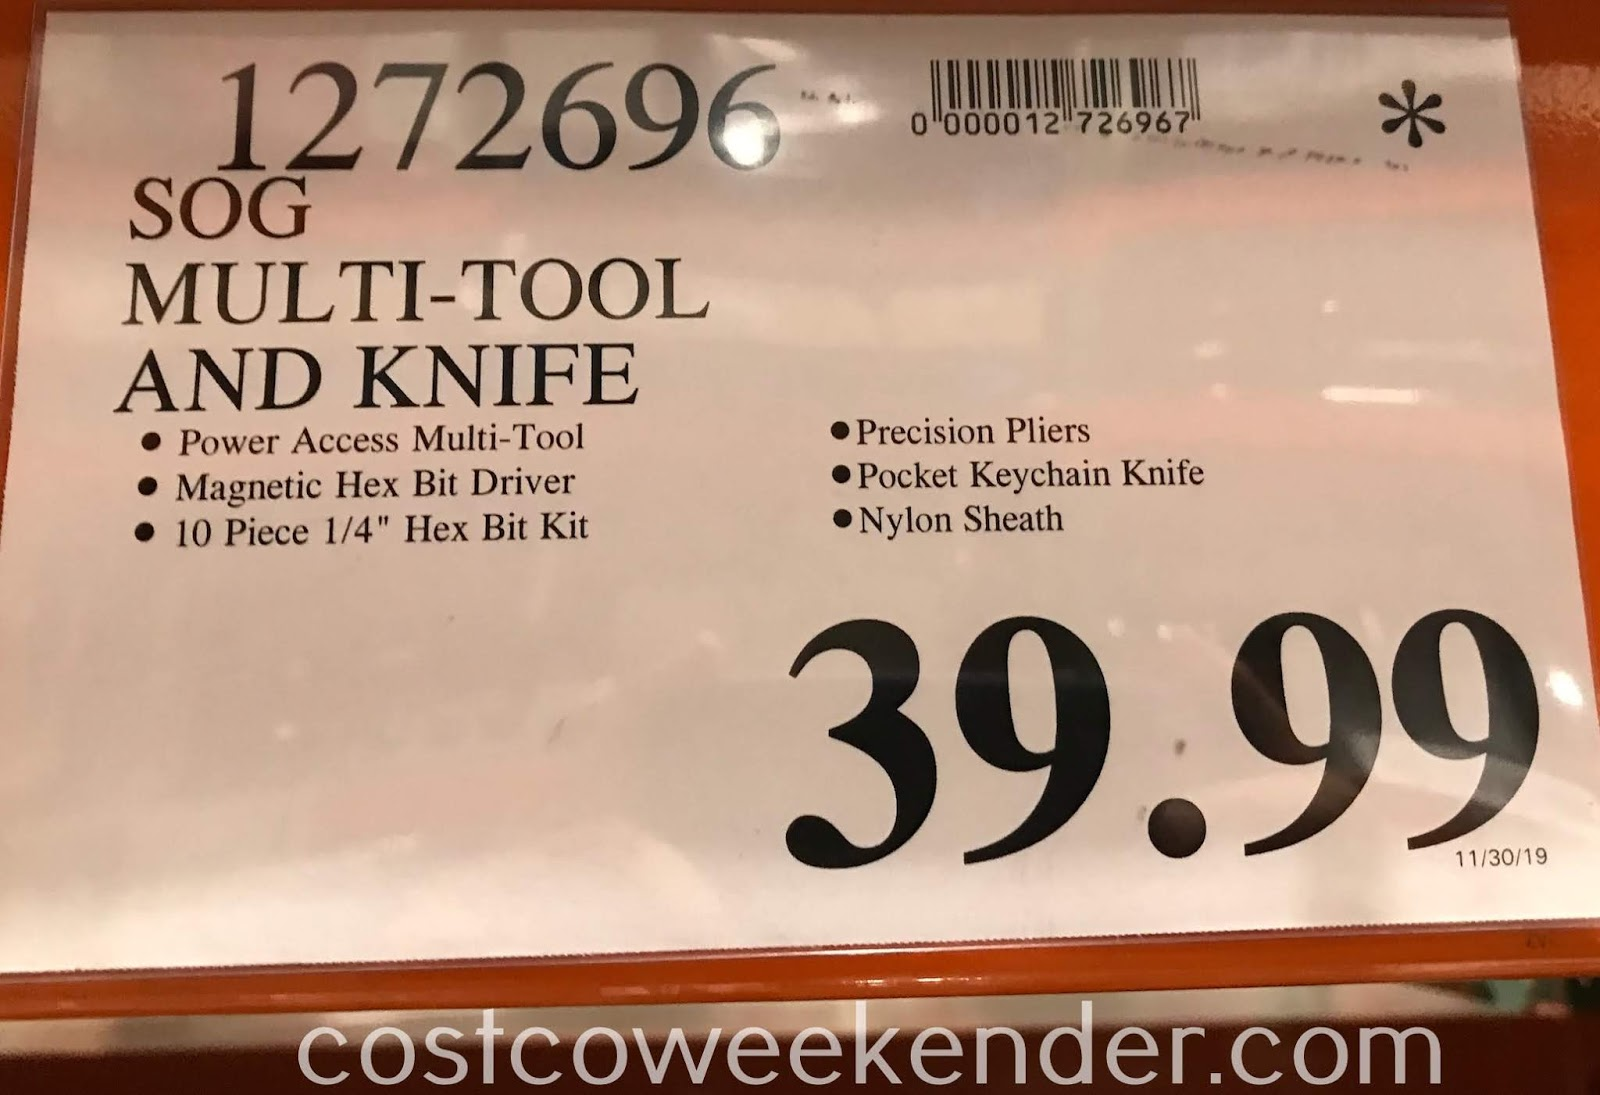 Deal for the SOG Multi-Tool and Knife at Costco